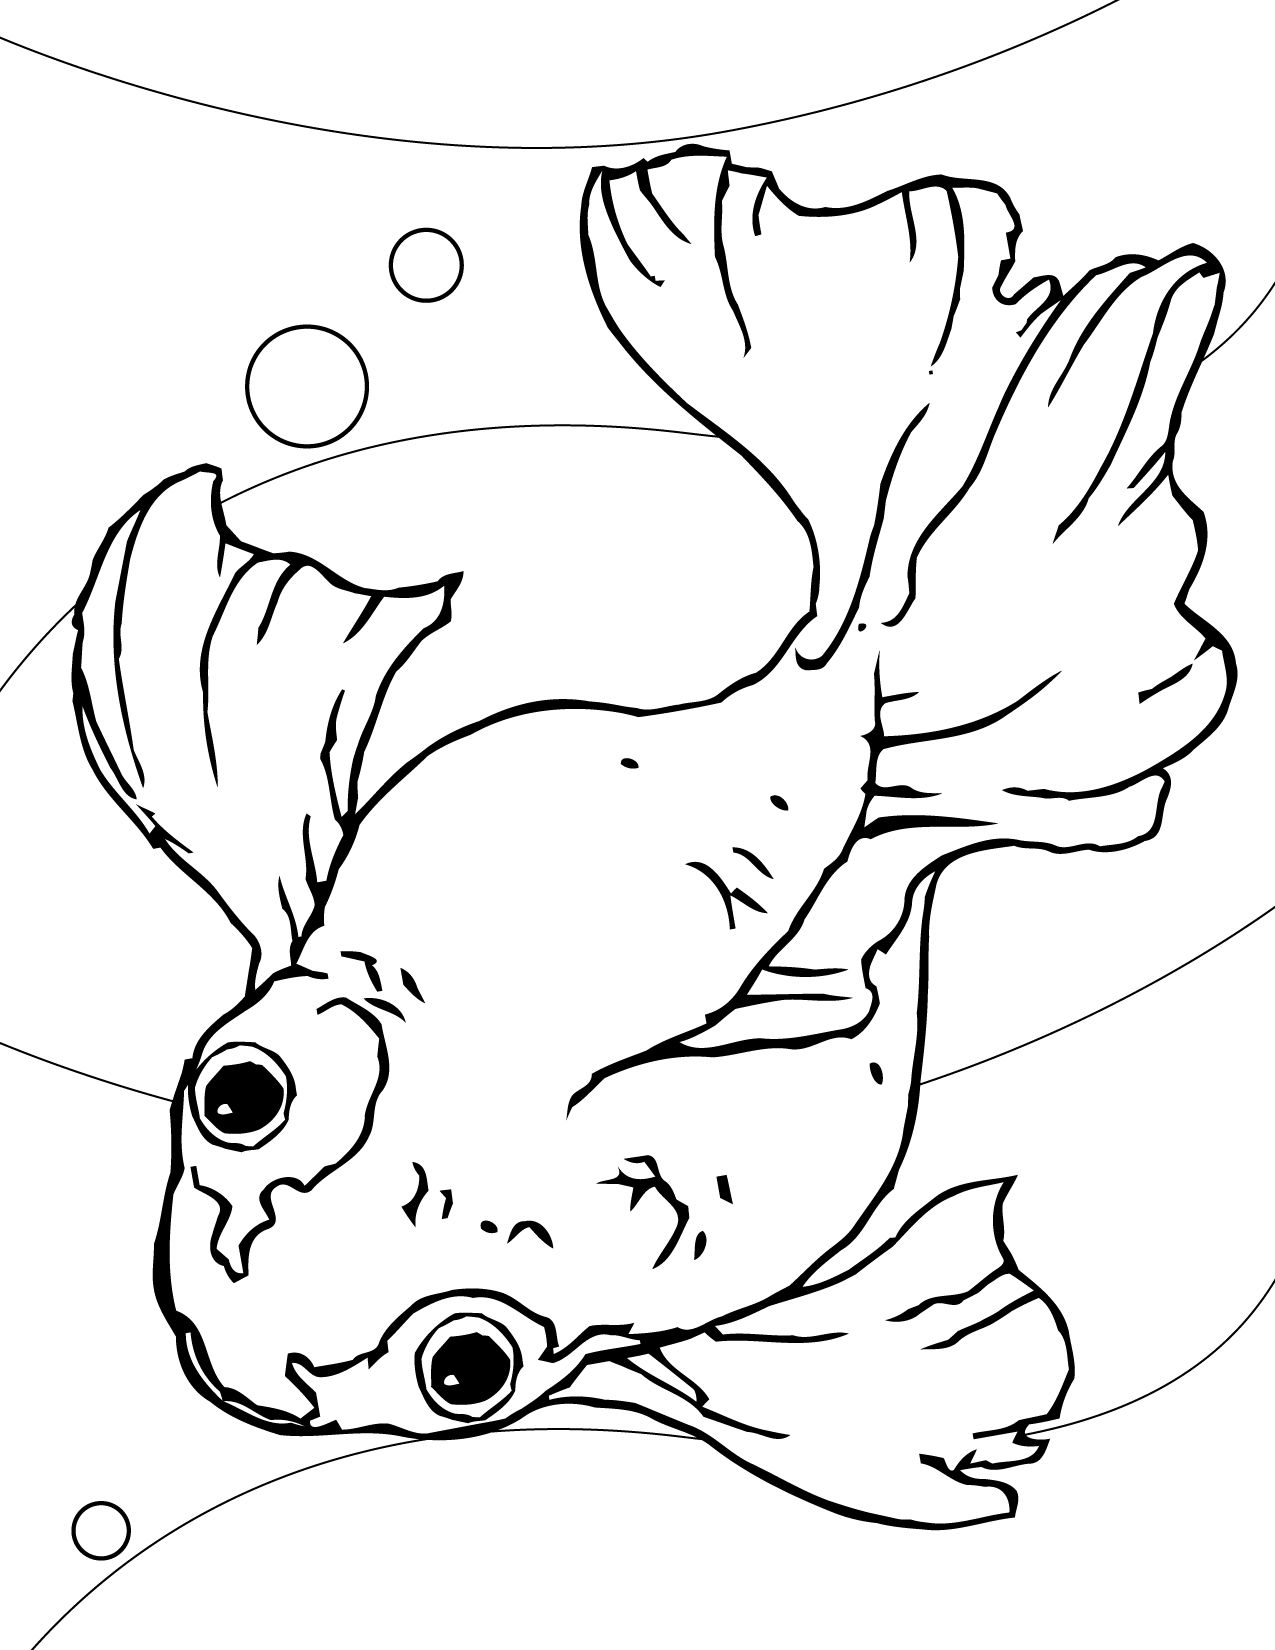 fish coloring pages for kids printable - Printable Fish Coloring Pages